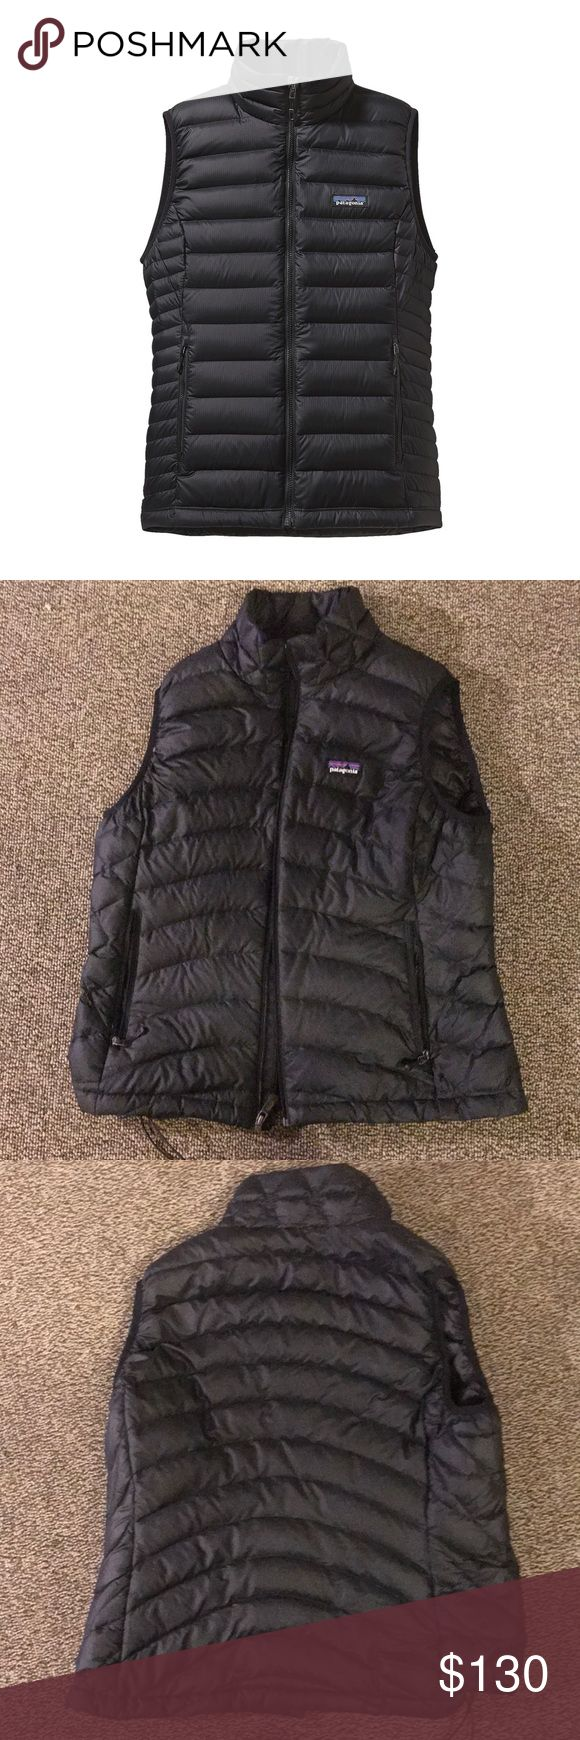 Patagonia Down Vest This is the Patagonia Women's Down Sweater Vest. It is in perfect condition other than a phone number and name sharpied on the tag. Made with traceable goose down, incredibly warm. Has internal chest pocket that converts to a stuffsack with a carabiner clip in loop. Patagonia Jackets & Coats Vests #downjacket